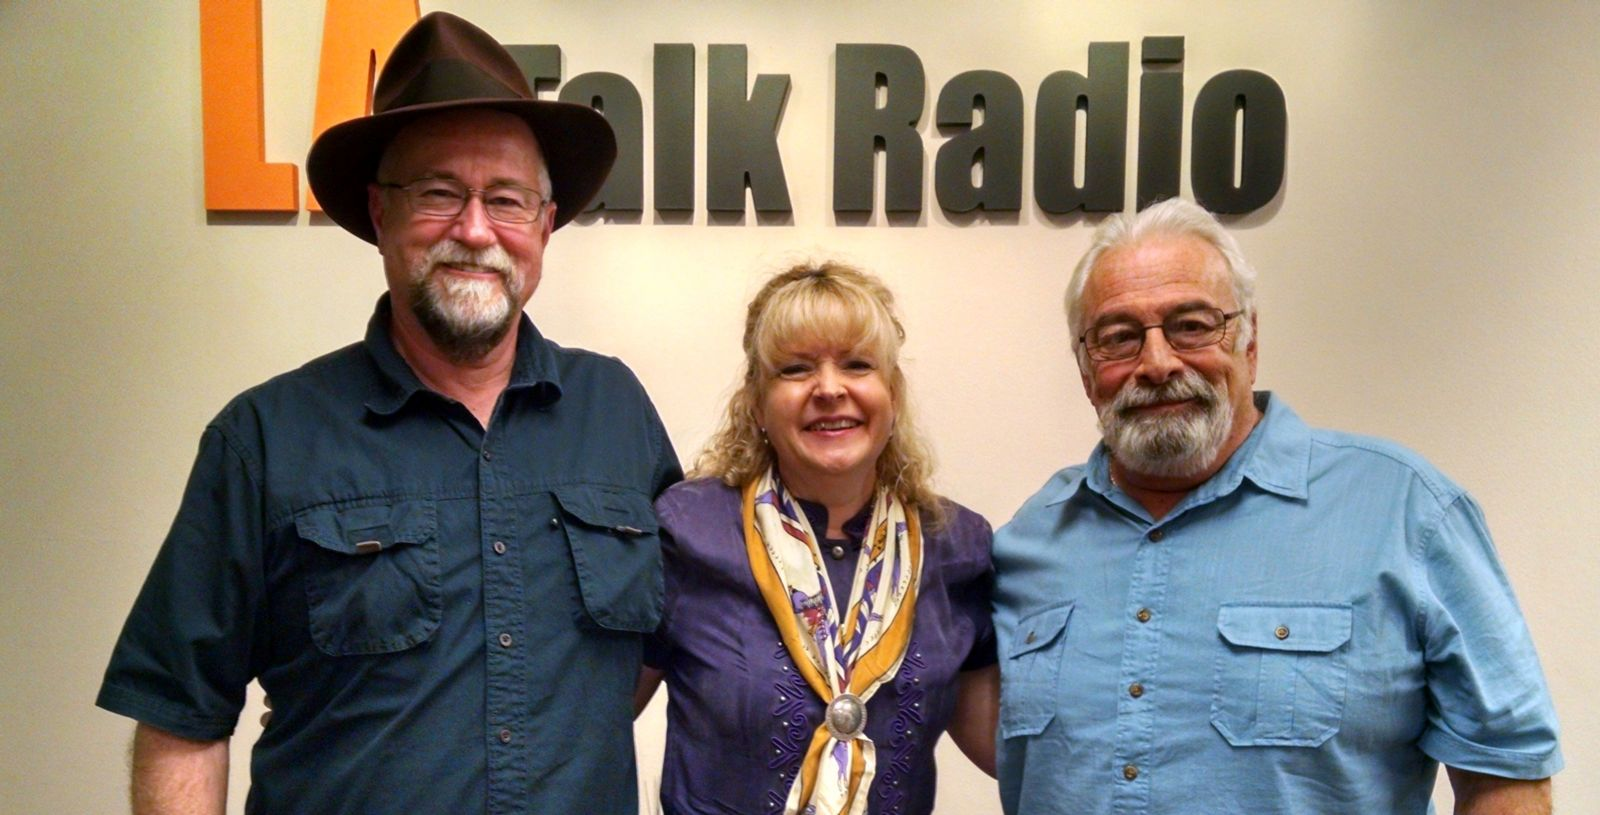 The Writer's Block Radio Show Hosts Jim Christina and Bobbi Bell with Guest J.R. Sanders